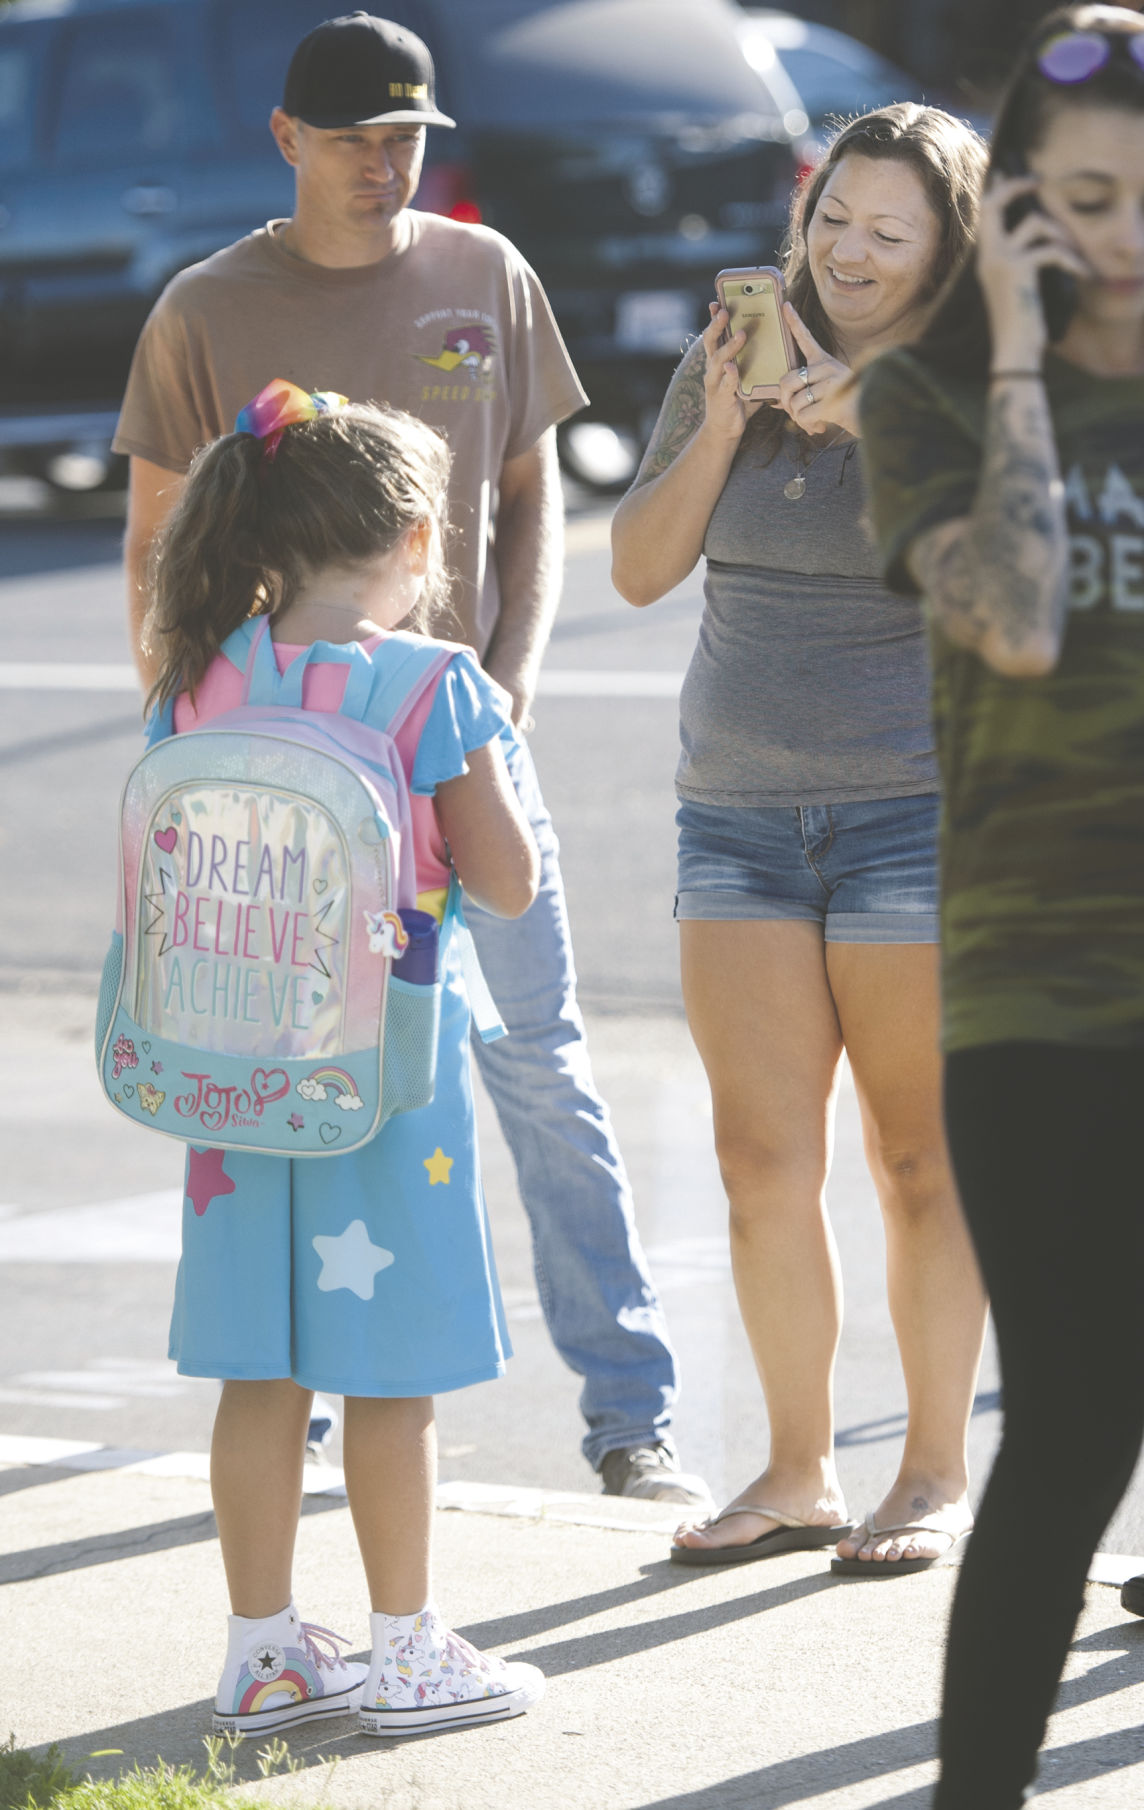 Arriving with class: Eager children excited to start new school year